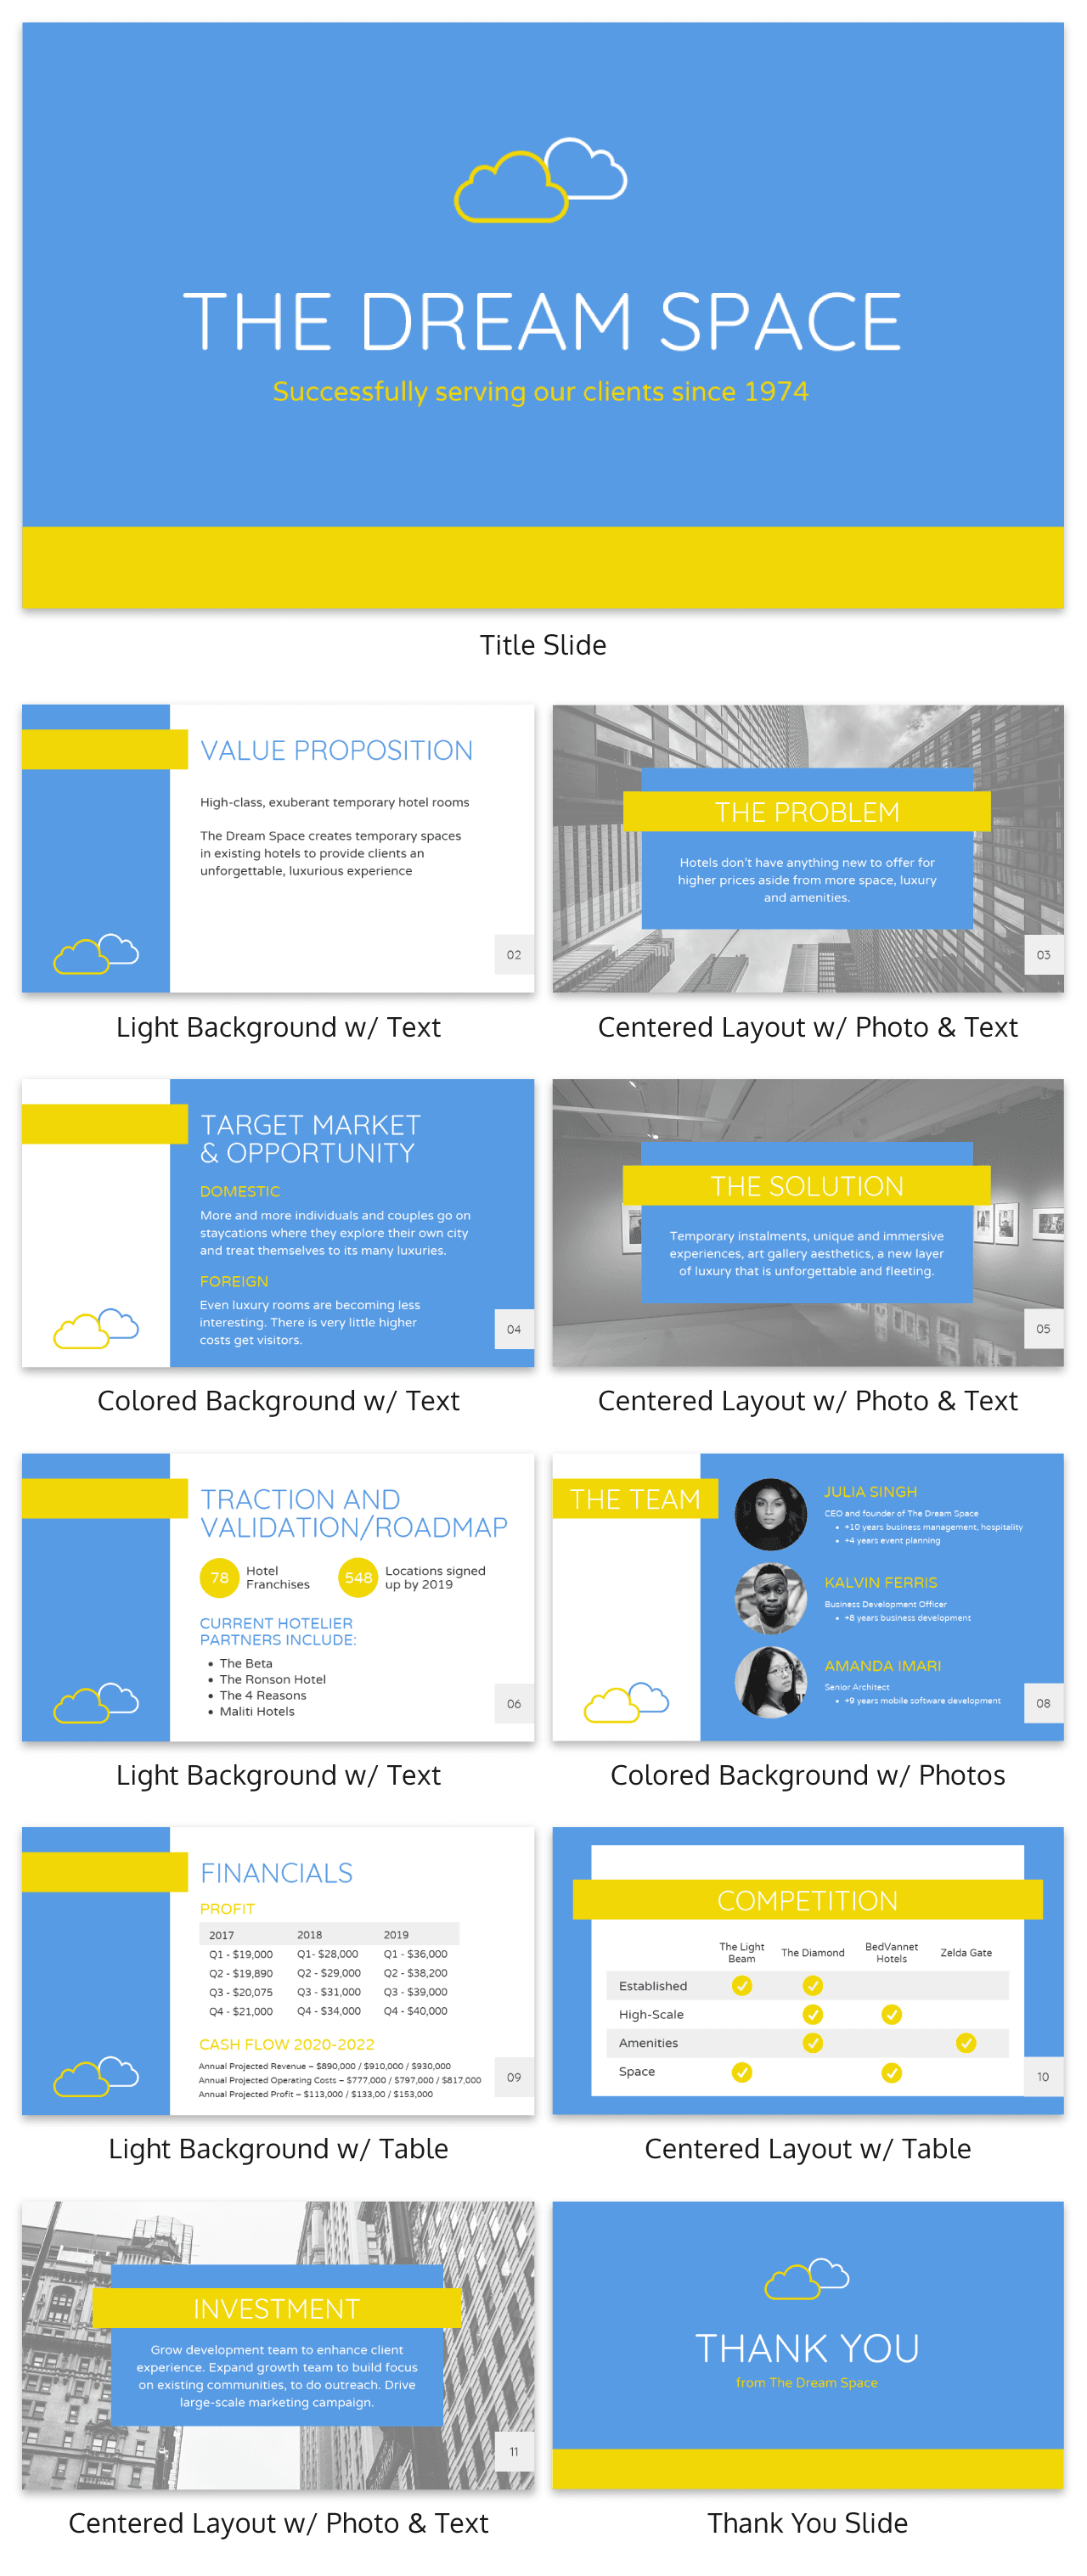 12 business pitch deck templates and design best practices to business pitch deck templates flashek Choice Image